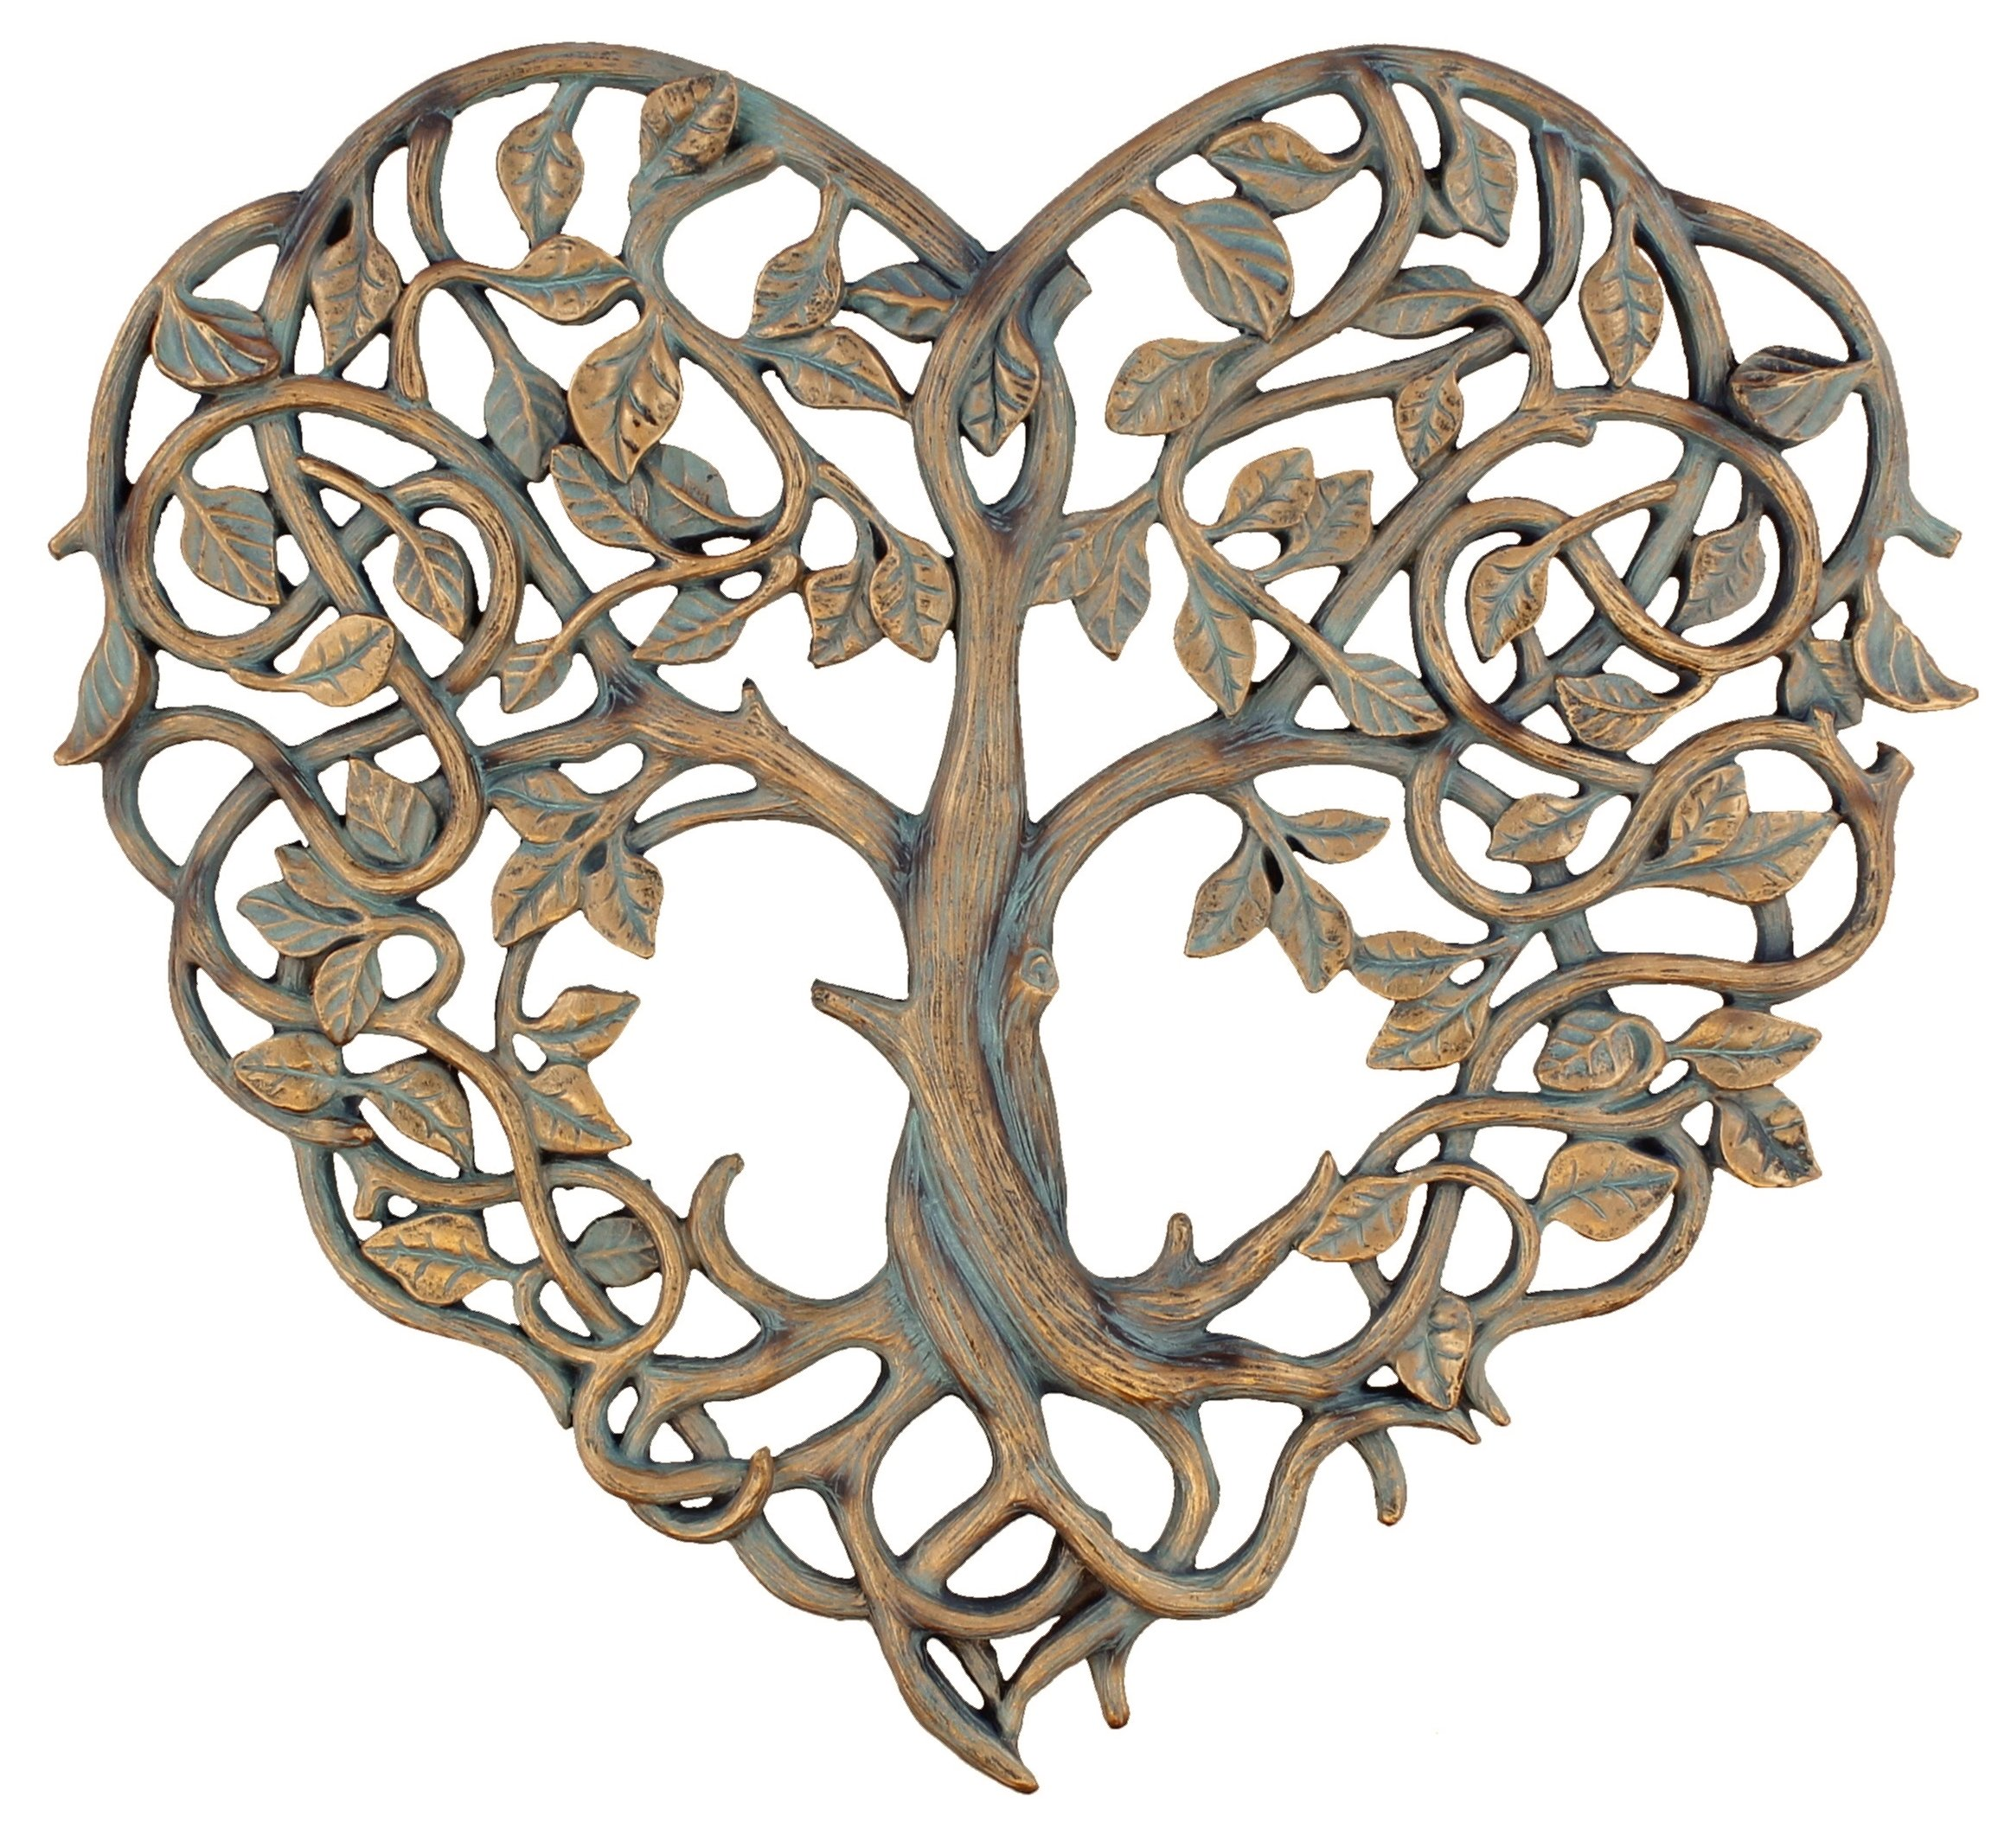 Old River Outdoors Tree of Life/Heart Wall Plaque 12'' Decorative Art Sculpture - I Love You Decor by Old River Outdoors